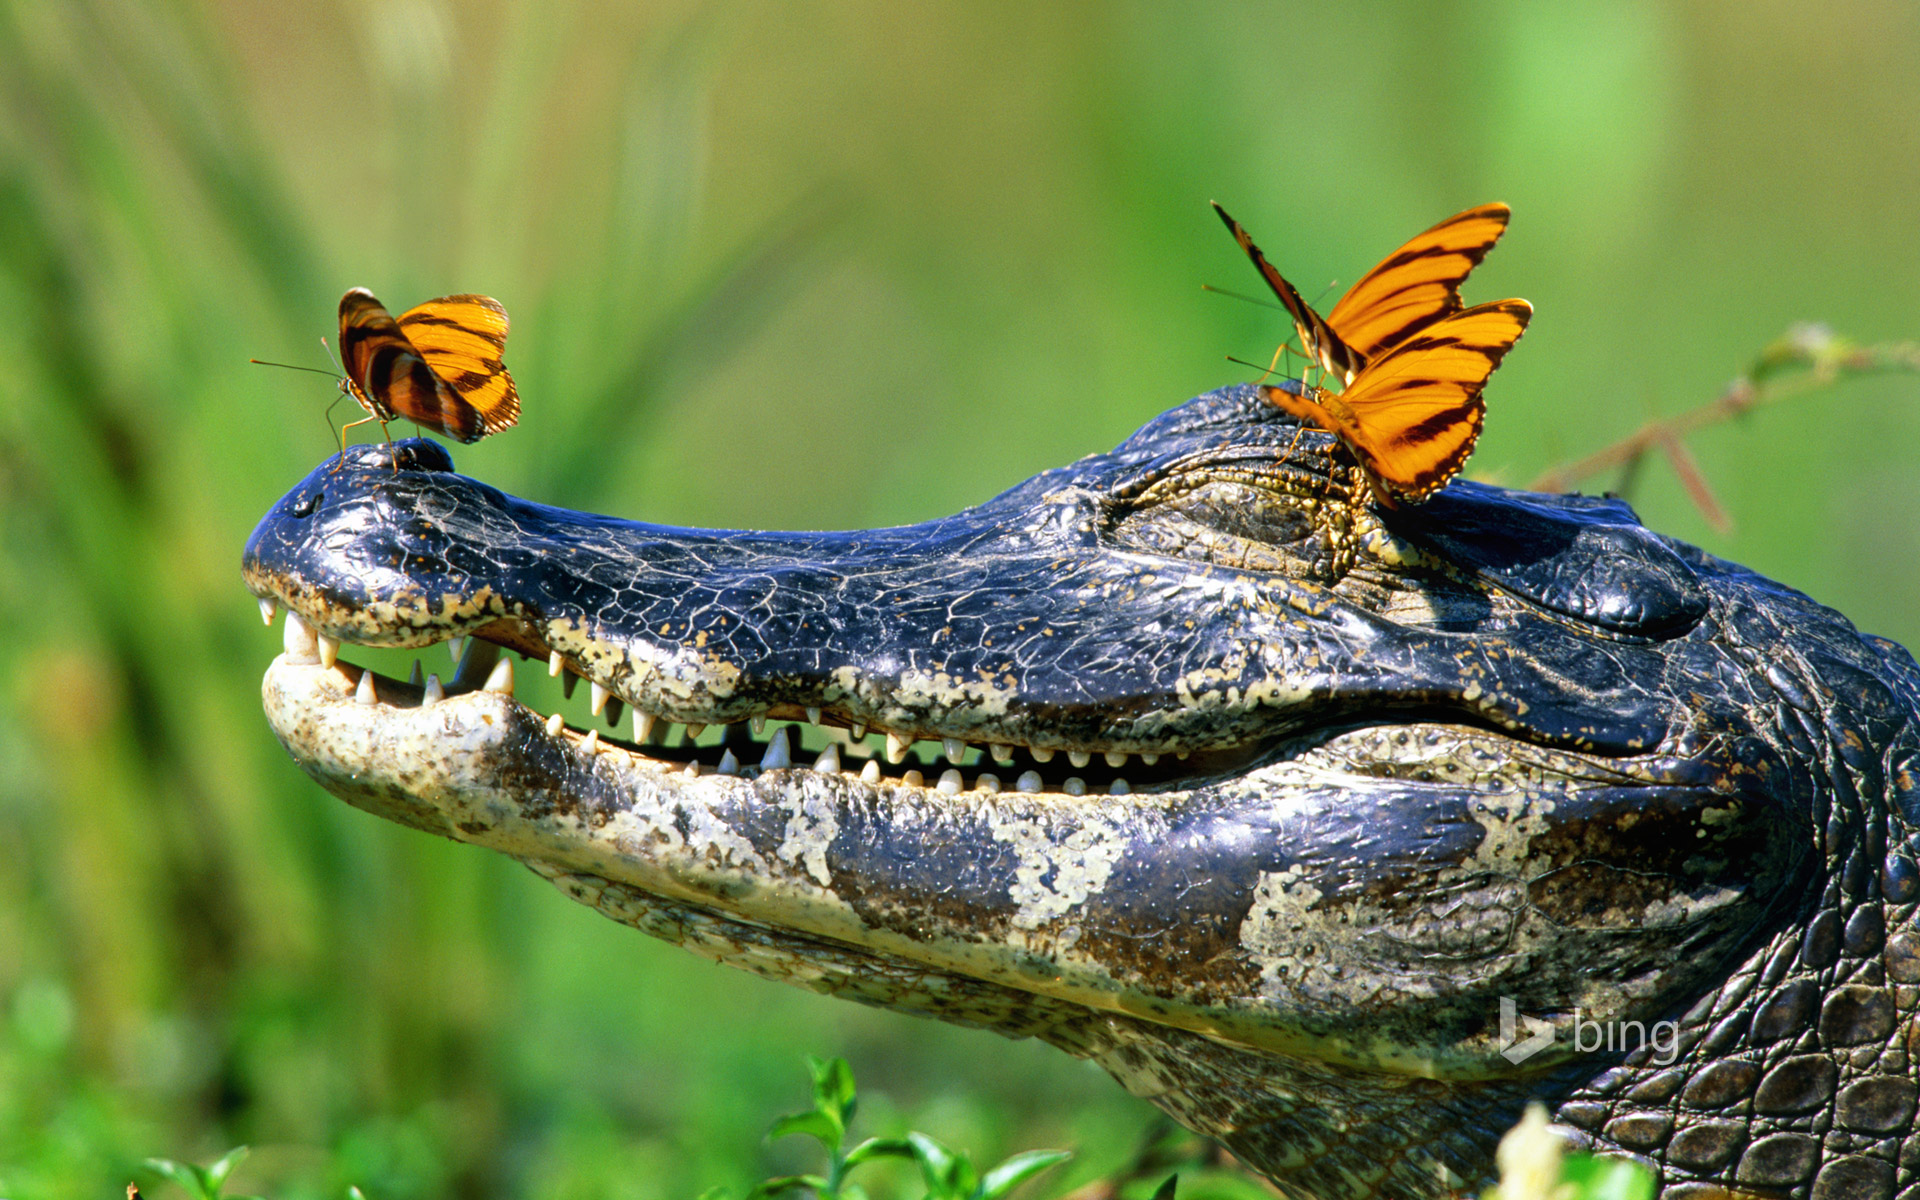 Butterflies resting on a caiman in the Pantanal, Brazil